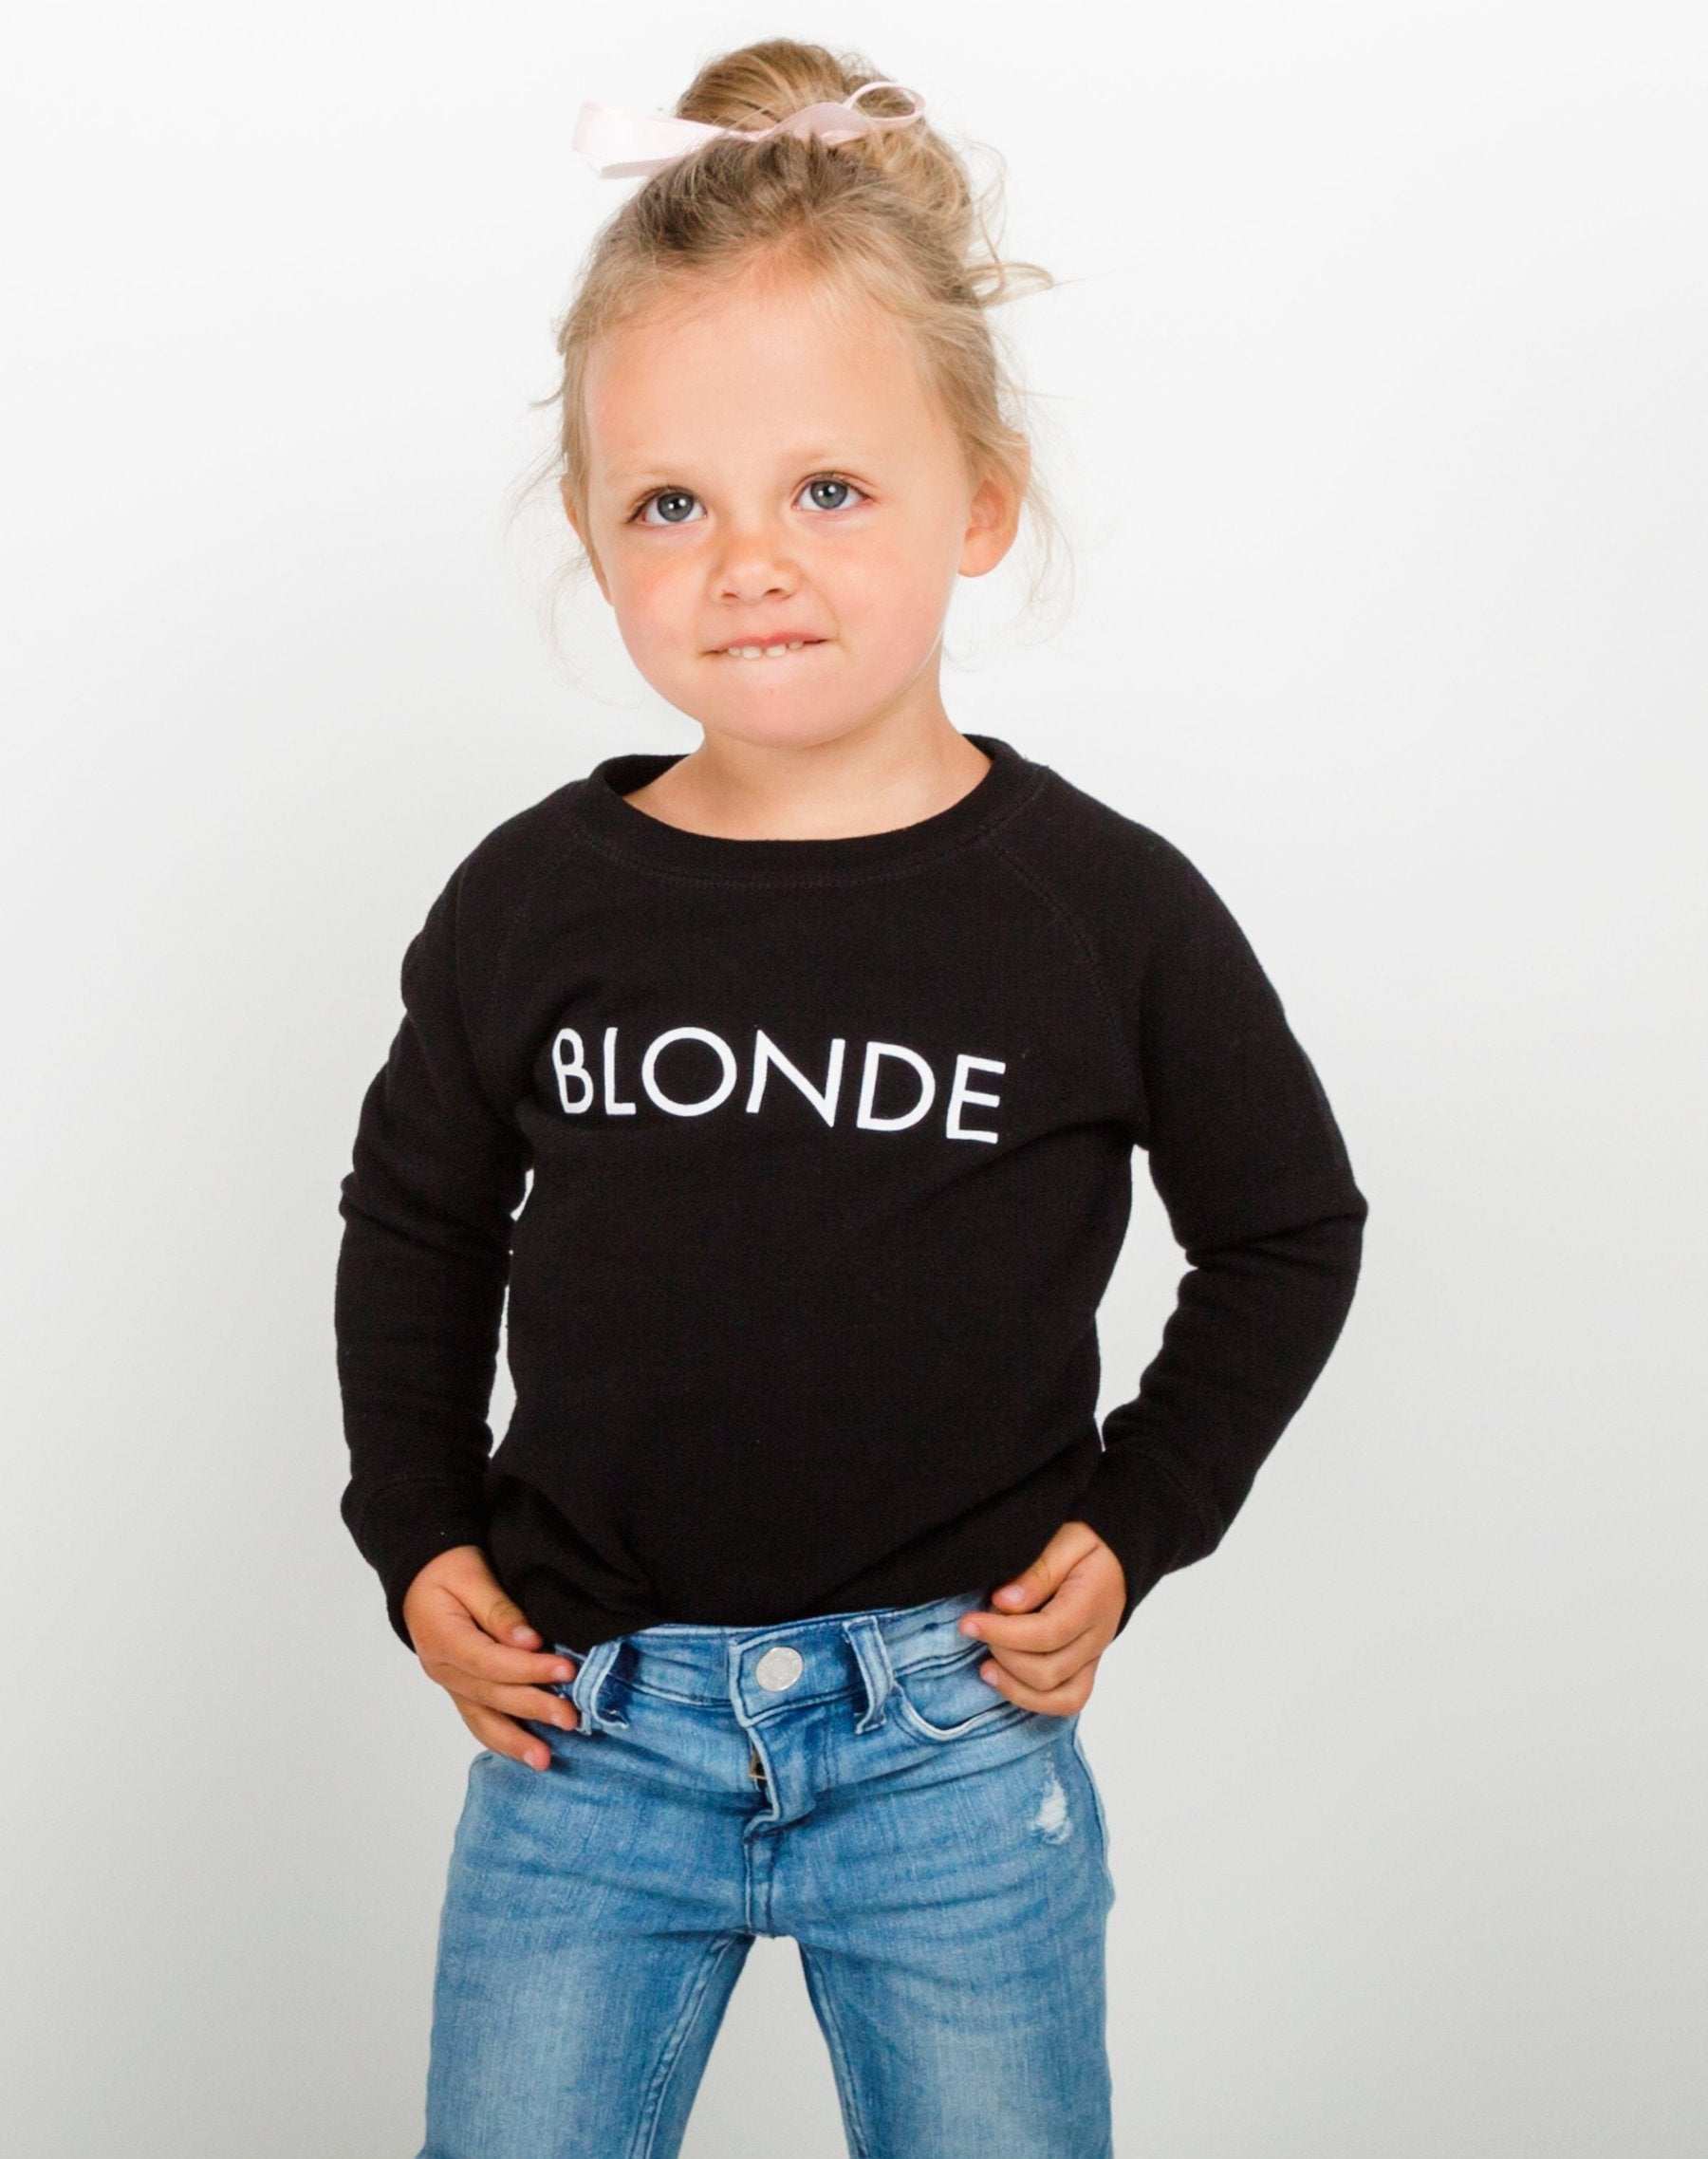 Photo of the Blonde Little Babes classic crew neck sweatshirt in black by Brunette the Label.